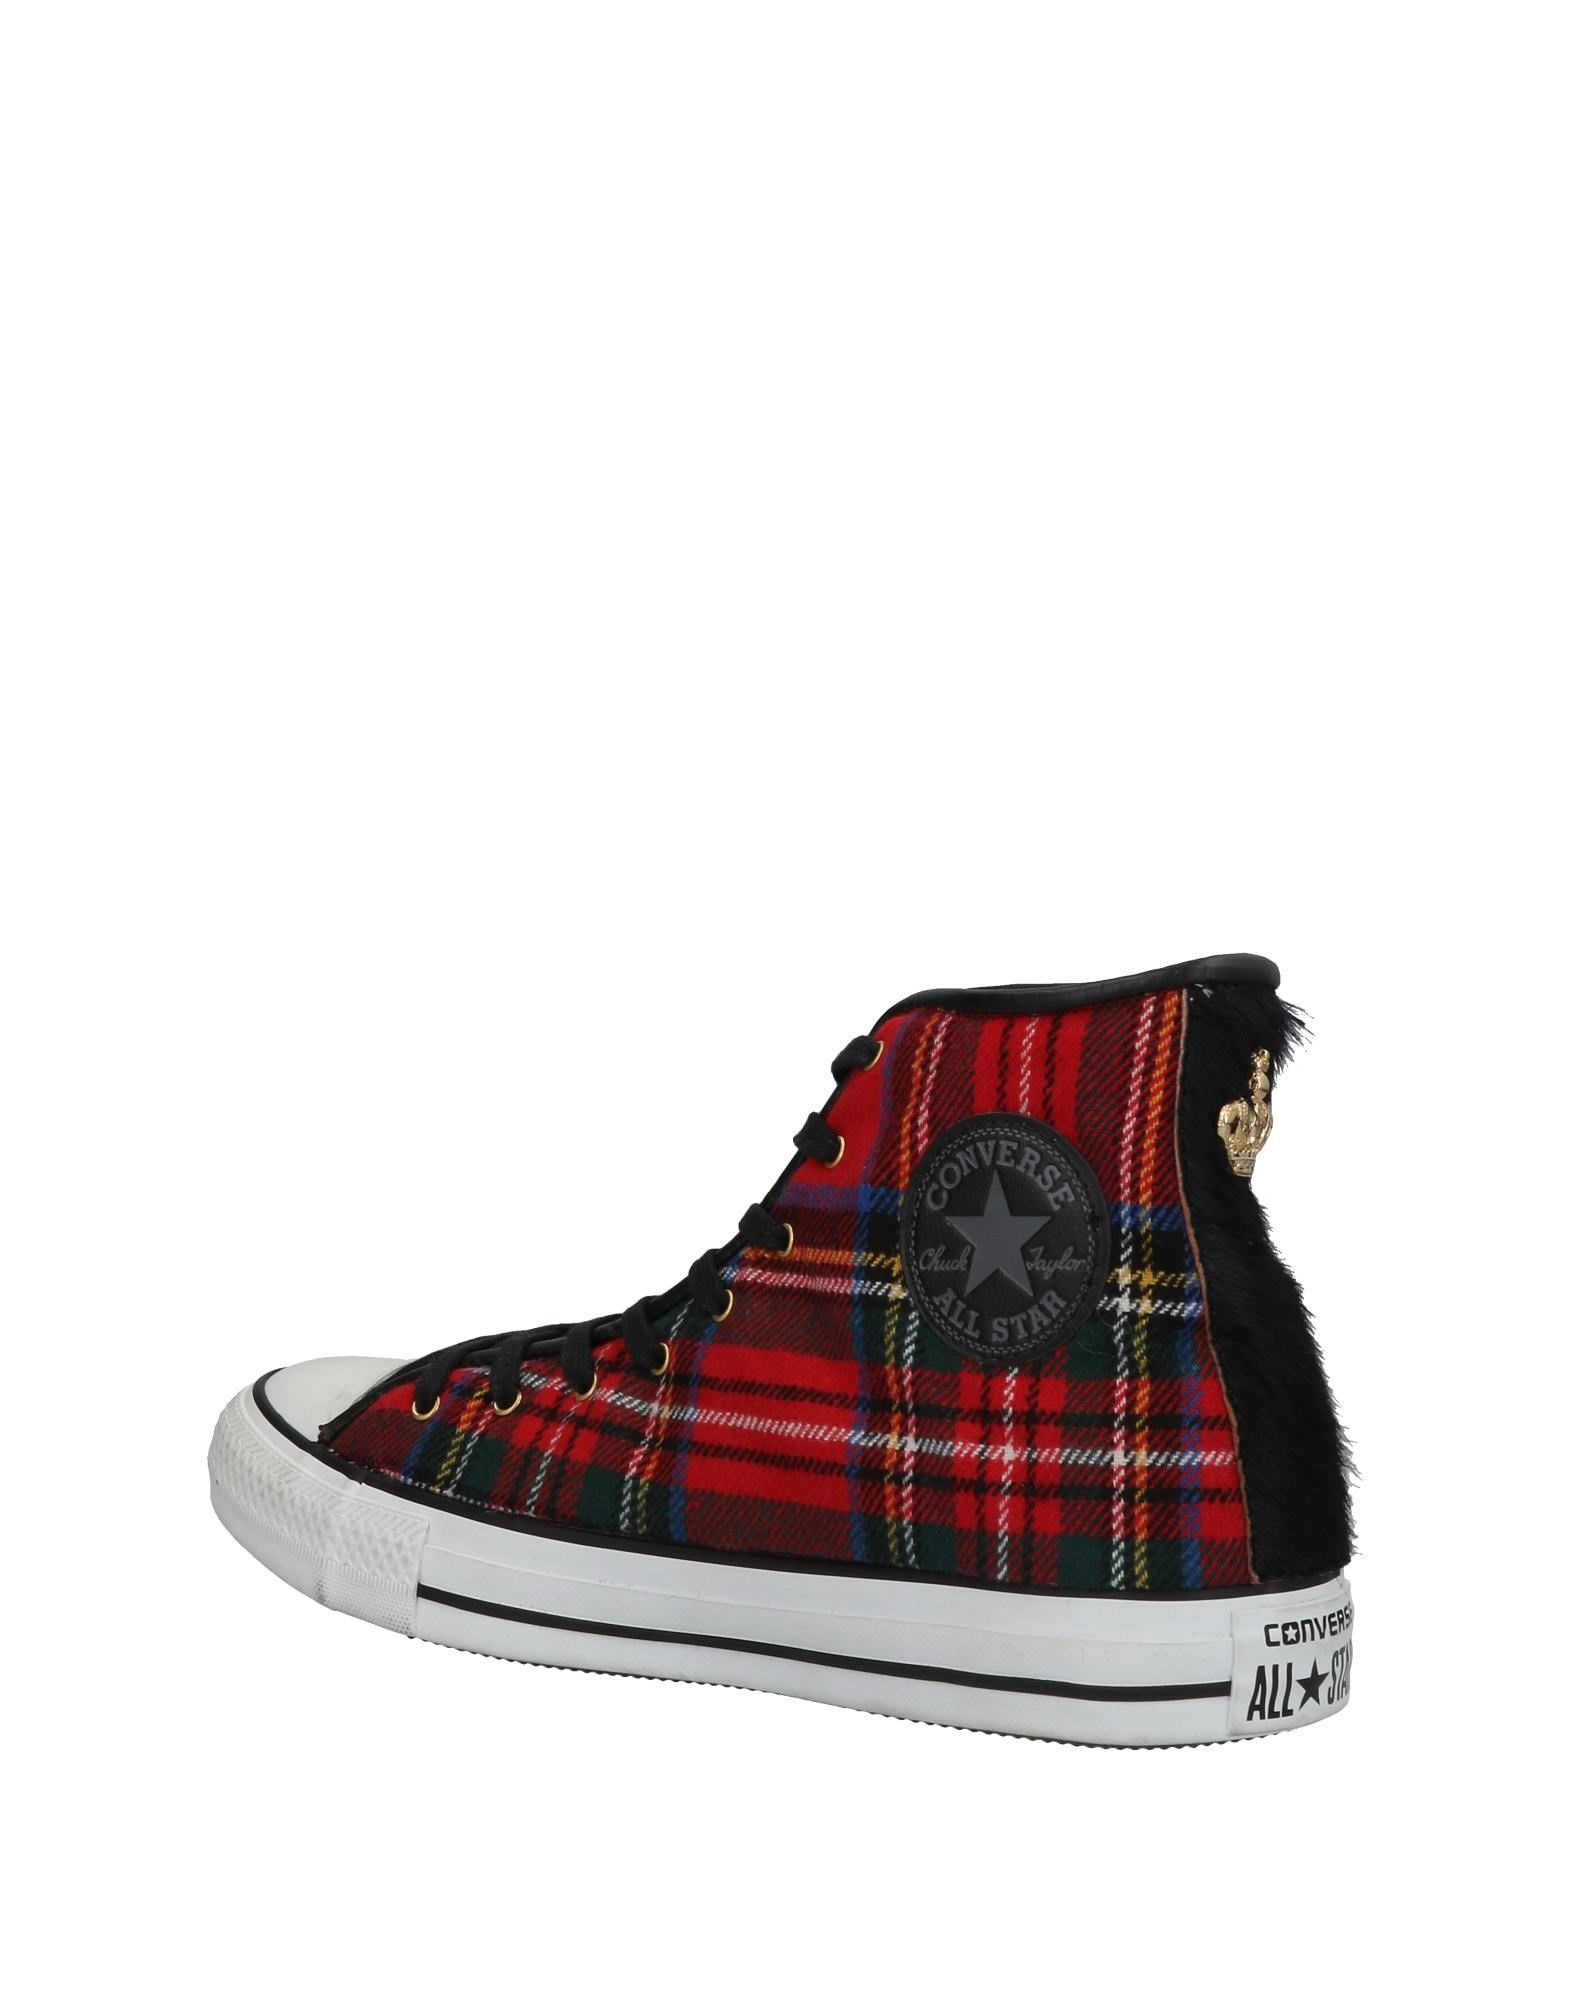 Converse Sneakers Limited Edition Sneakers Converse Herren  11430674TK 4789f0